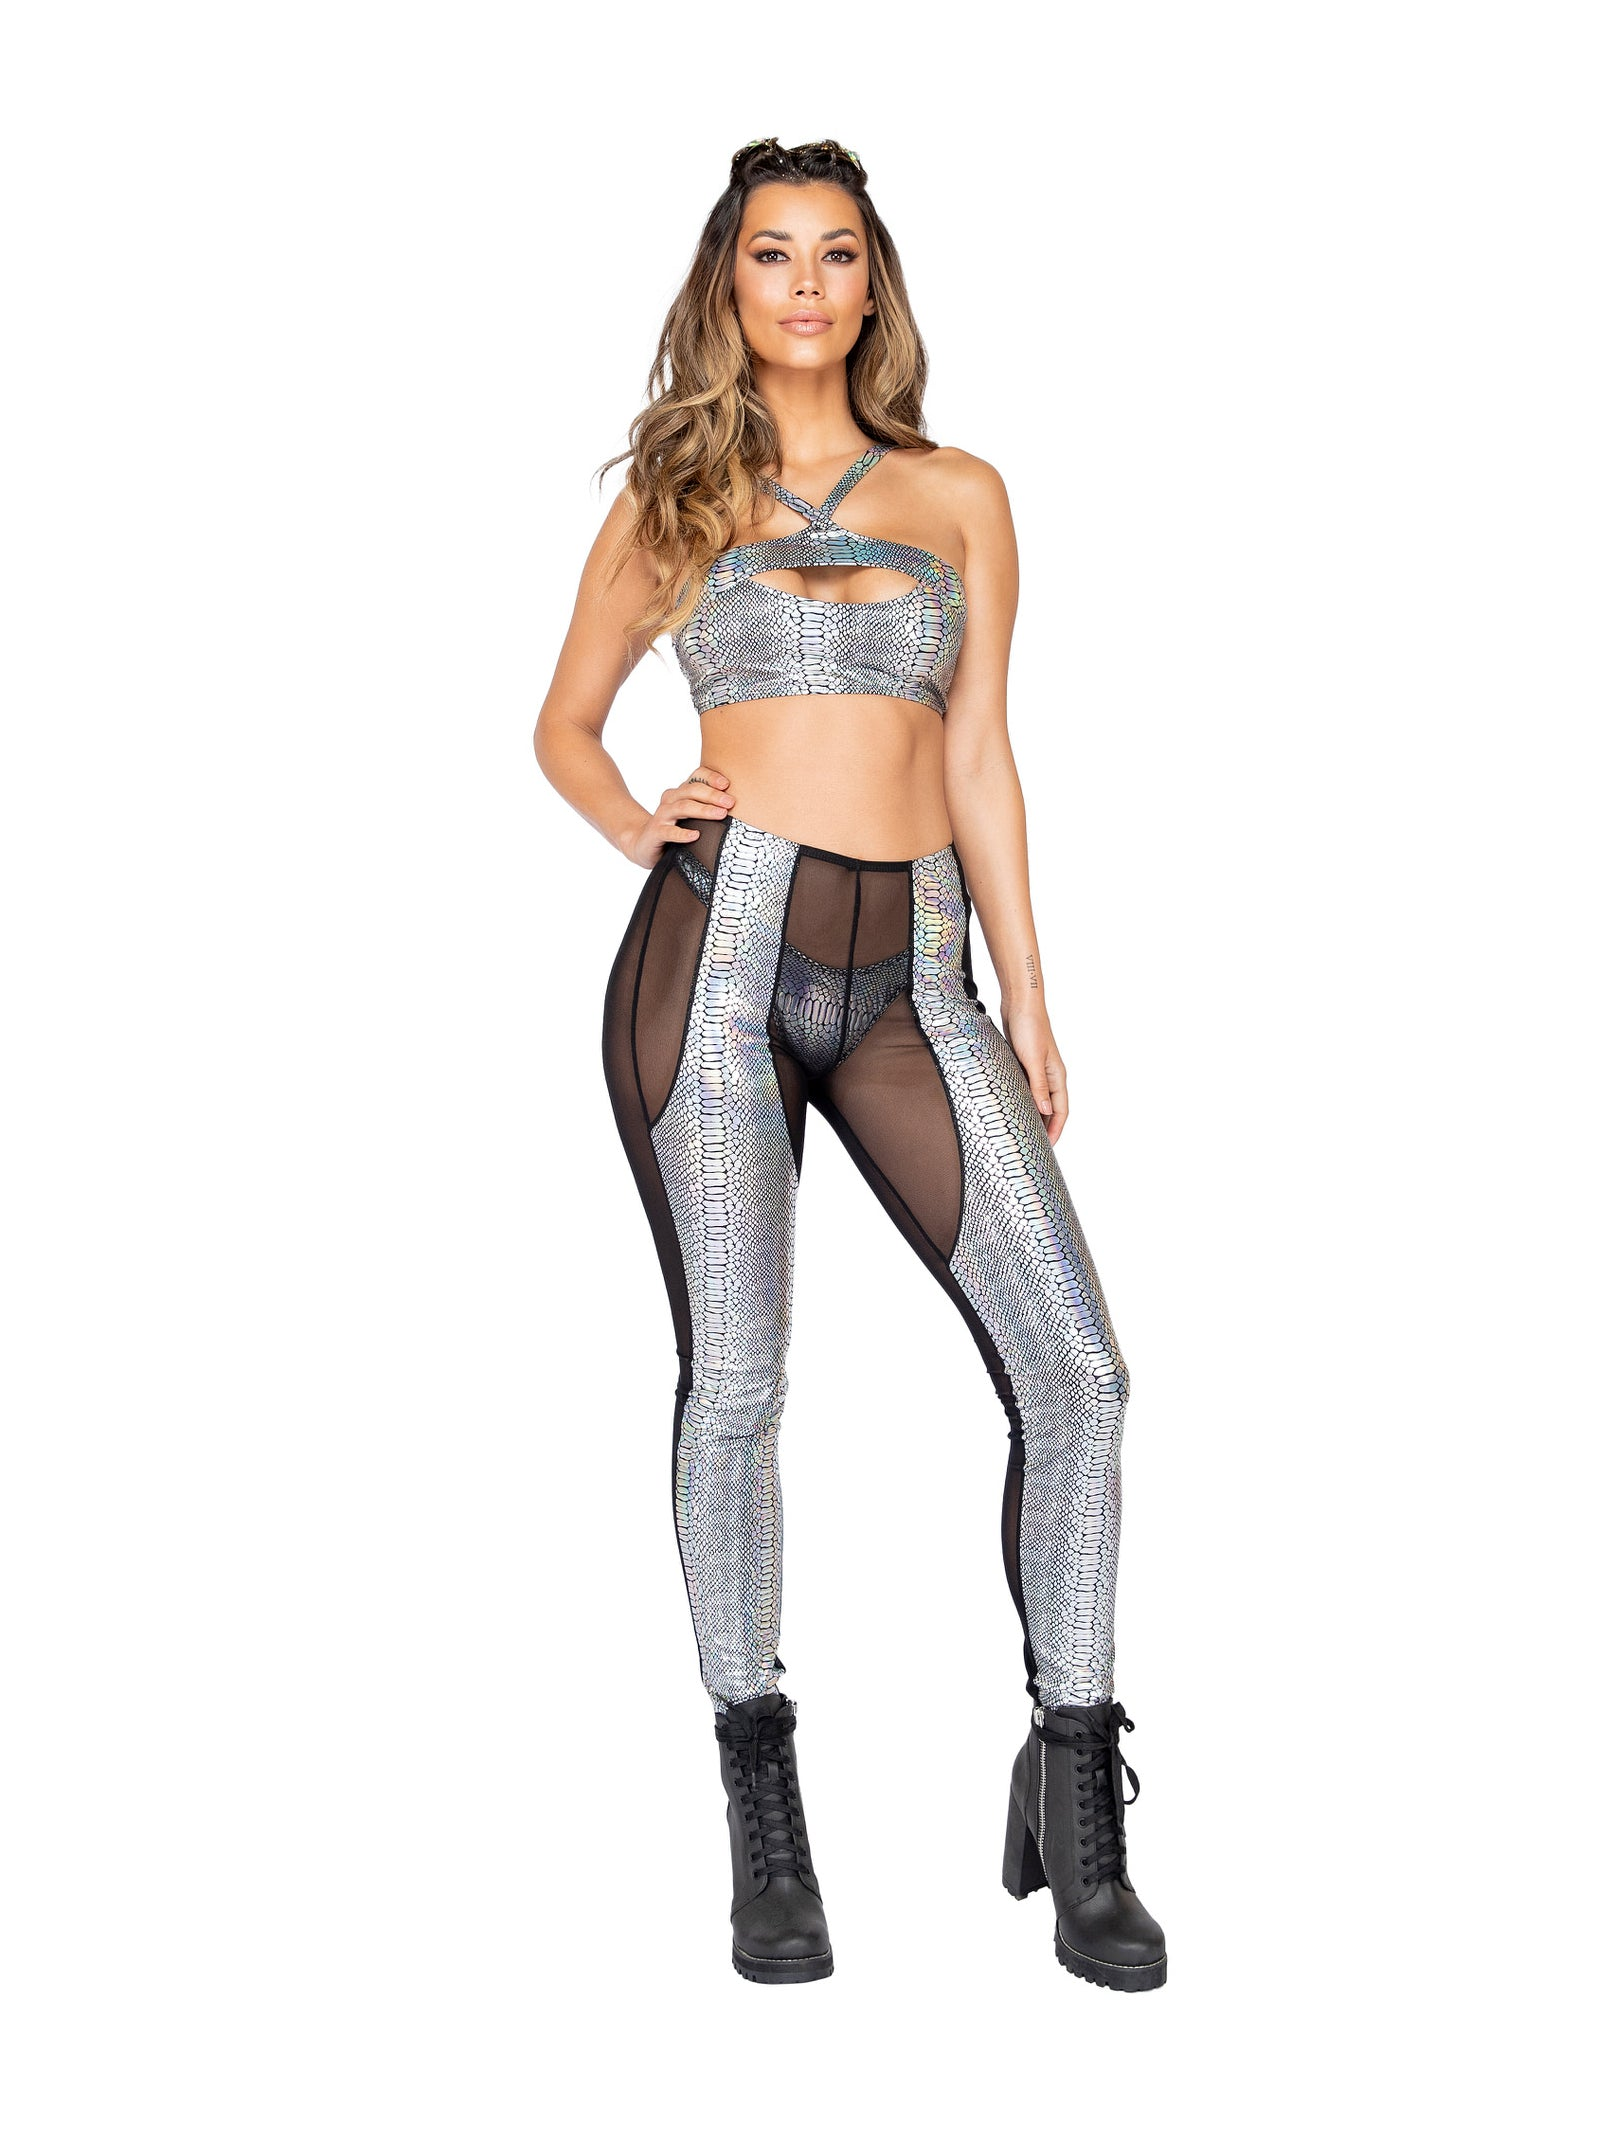 3856 - Two-Tone Sheer & Snakeskin Pants